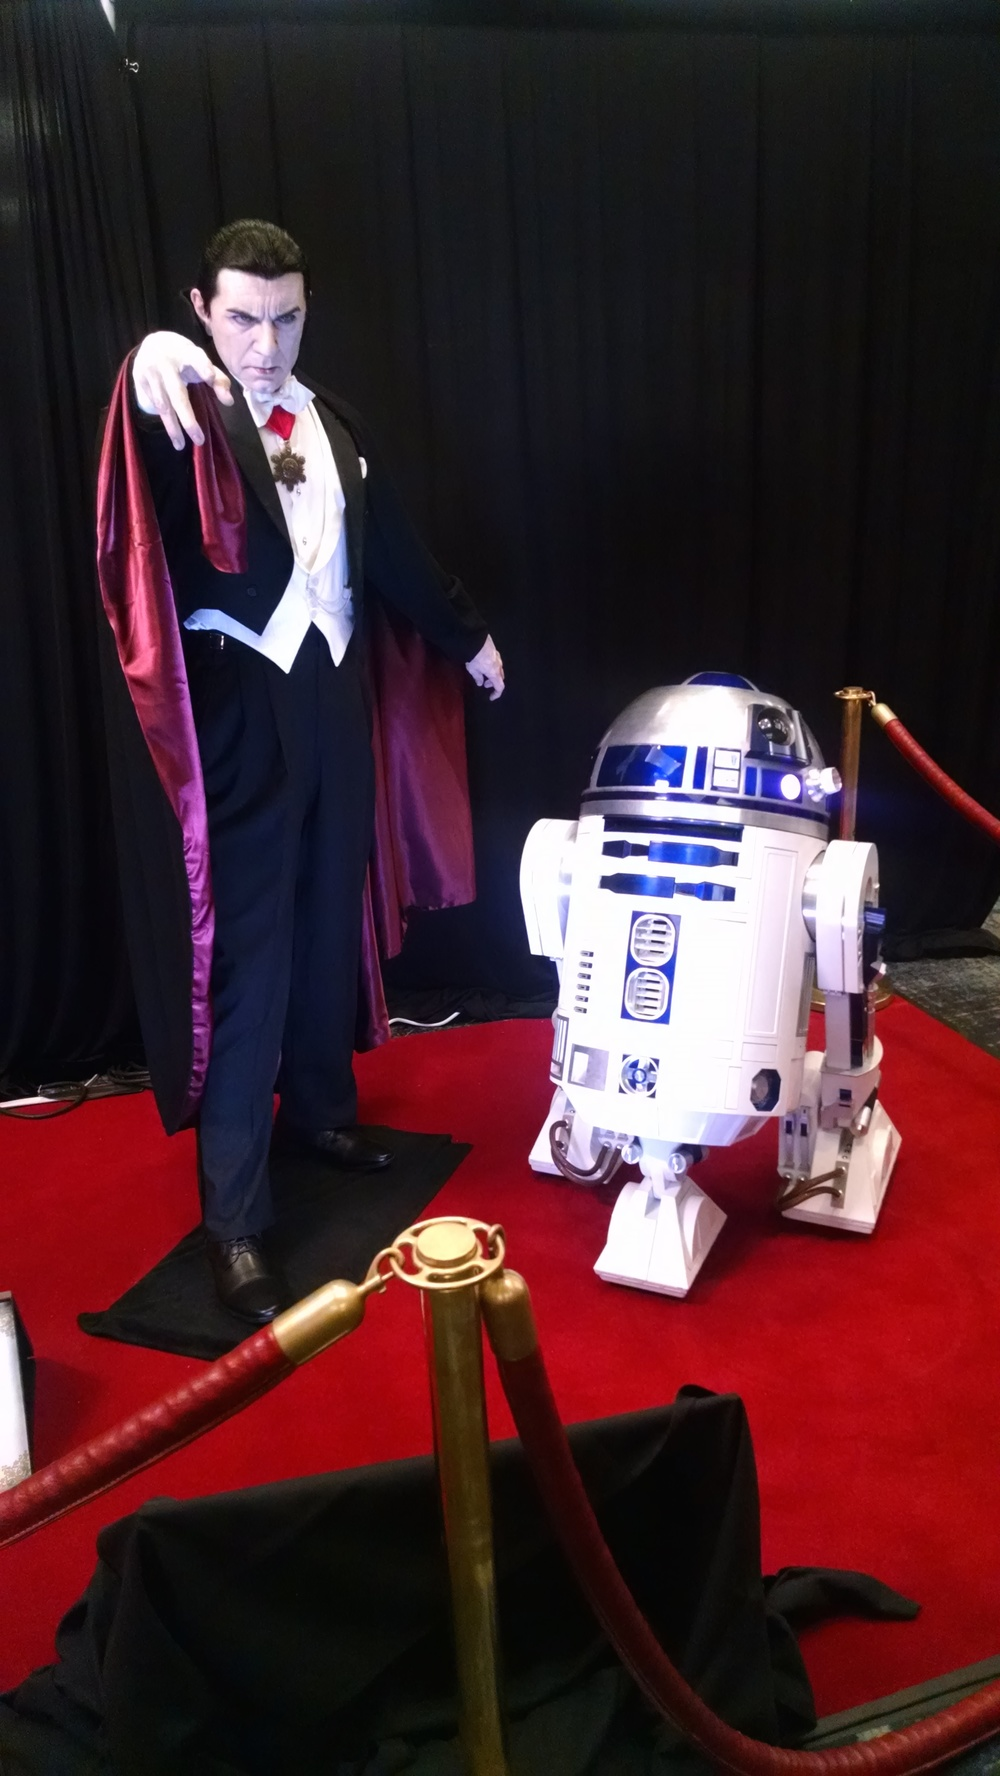 Mike Hill's amazing Bela Lugosi sculpture... joined by an R2-D2